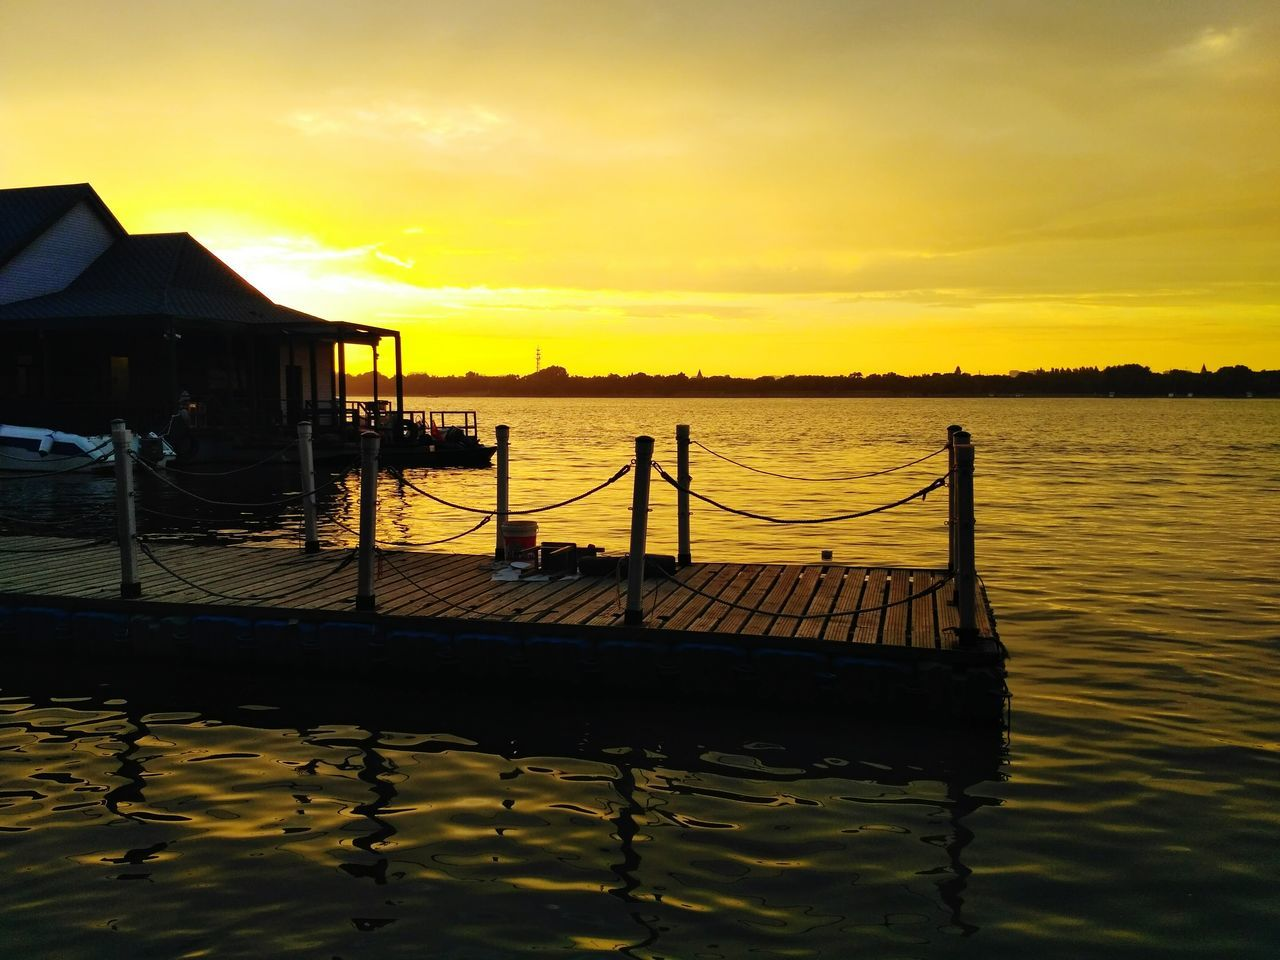 sunset, water, nature, beauty in nature, tranquility, scenics, sky, built structure, outdoors, silhouette, tranquil scene, sea, no people, architecture, day